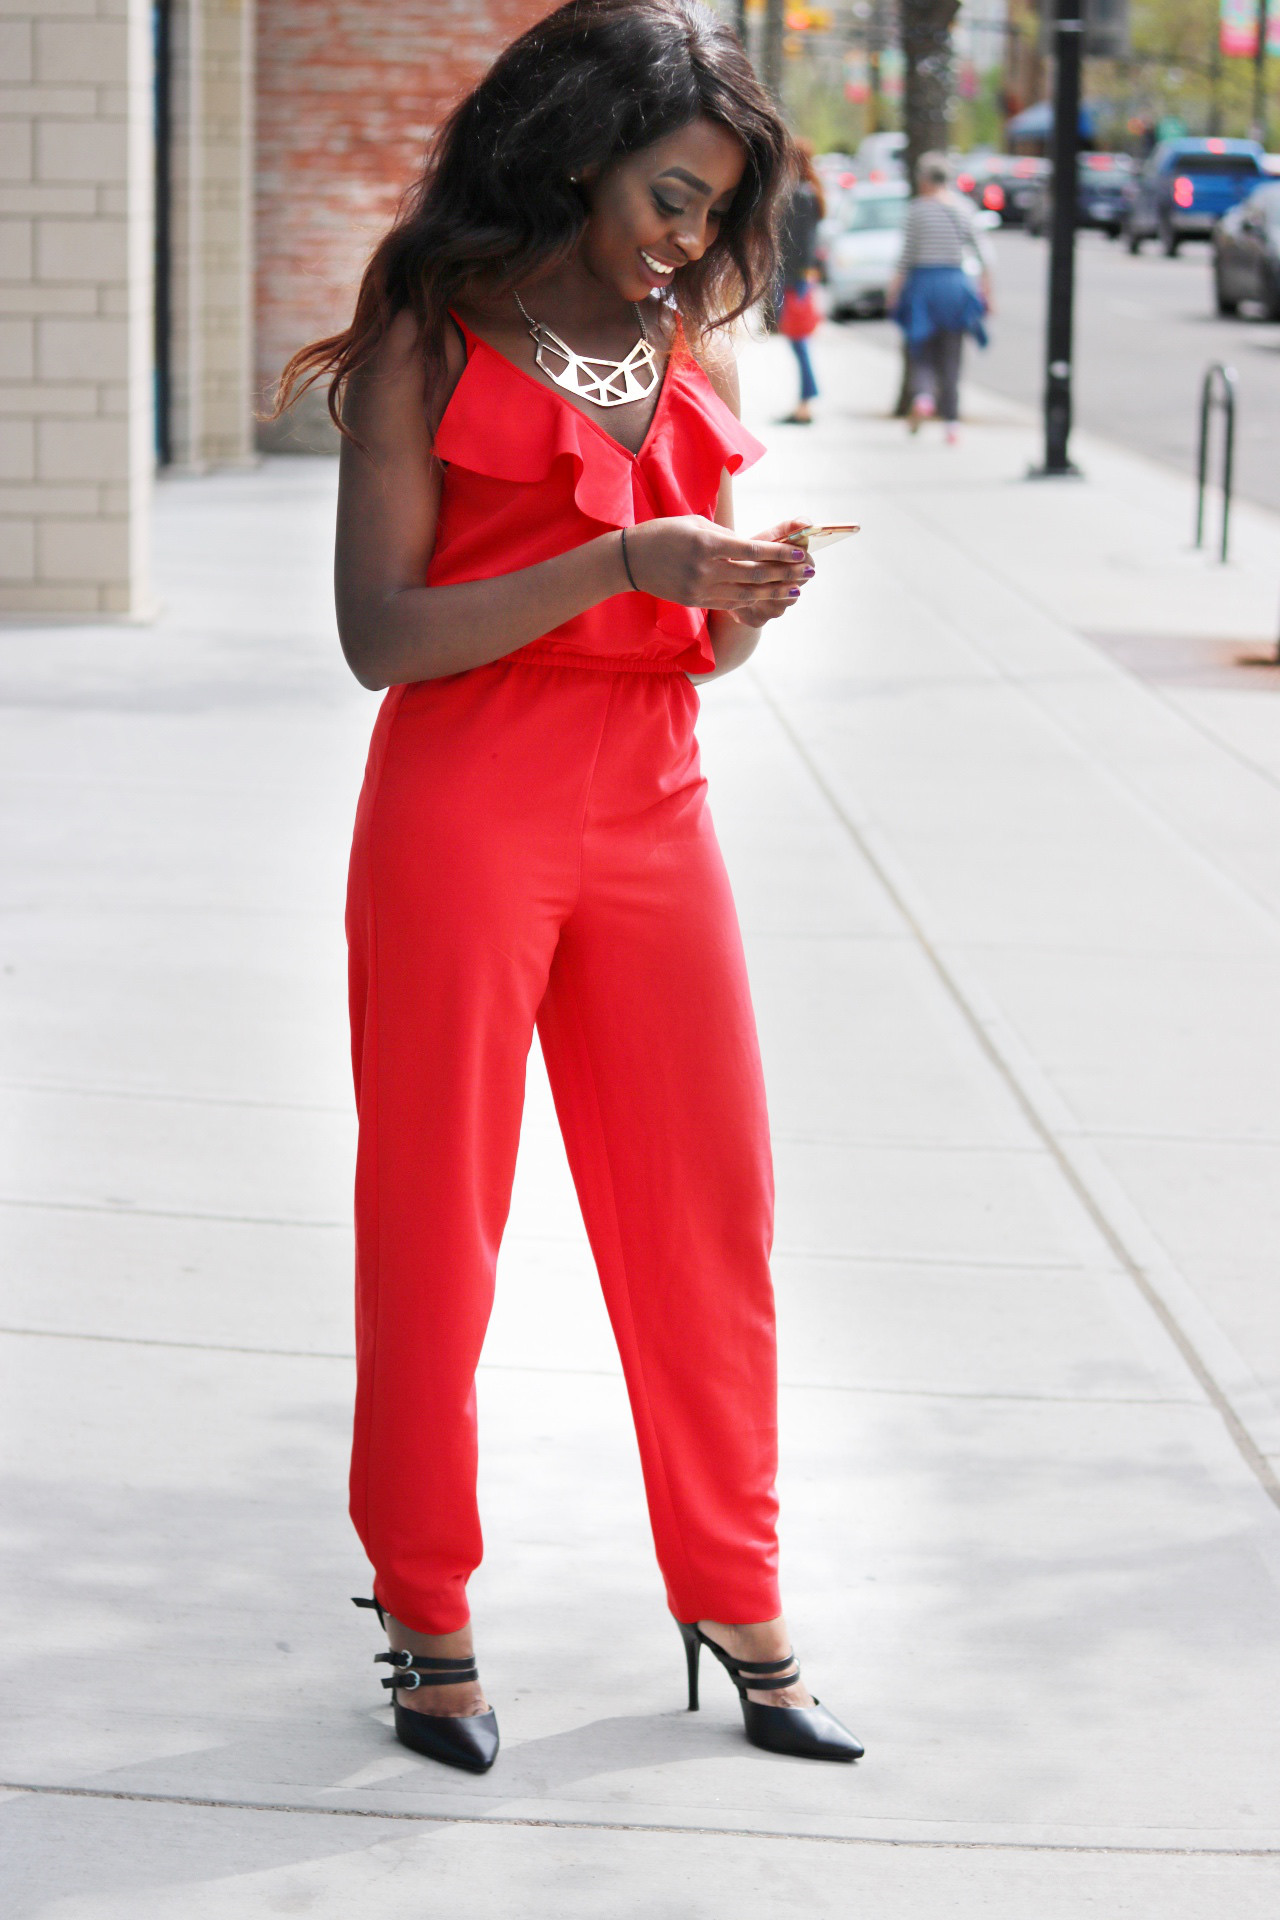 Color Theory Will Make You THAT Lady in RED!